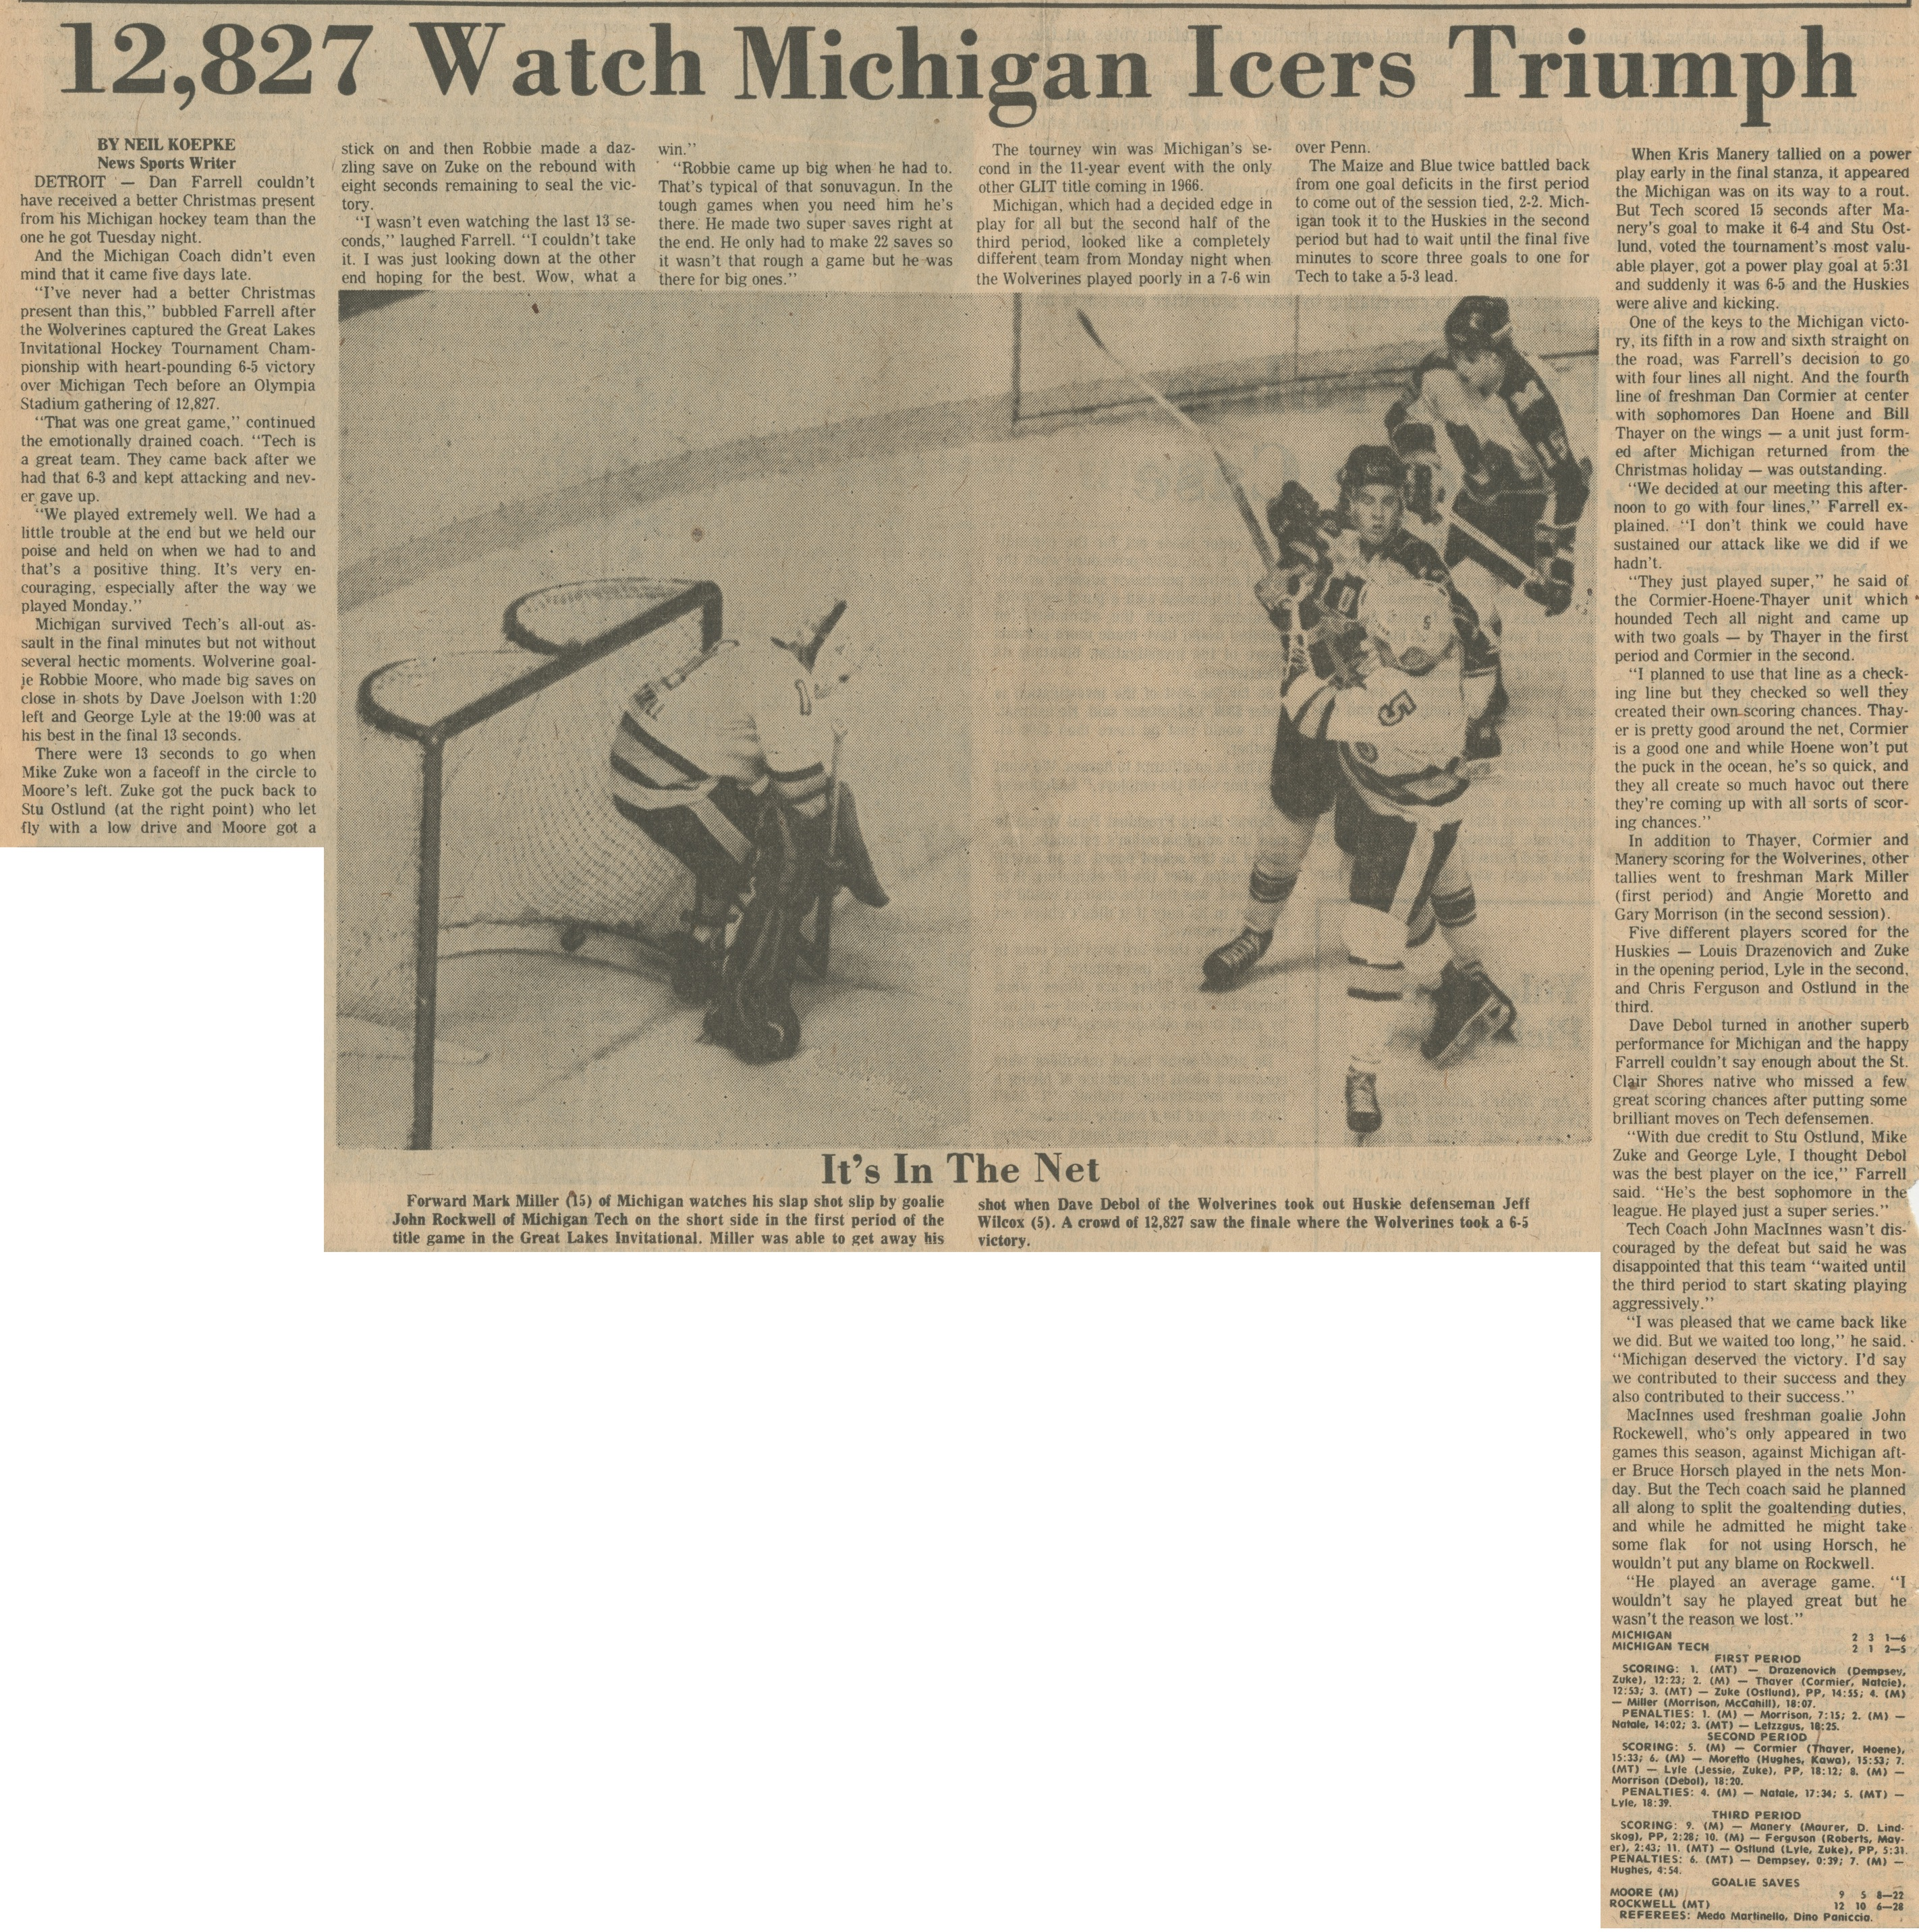 12,827 Watch Michigan Icers Triumph | Ann Arbor District Library